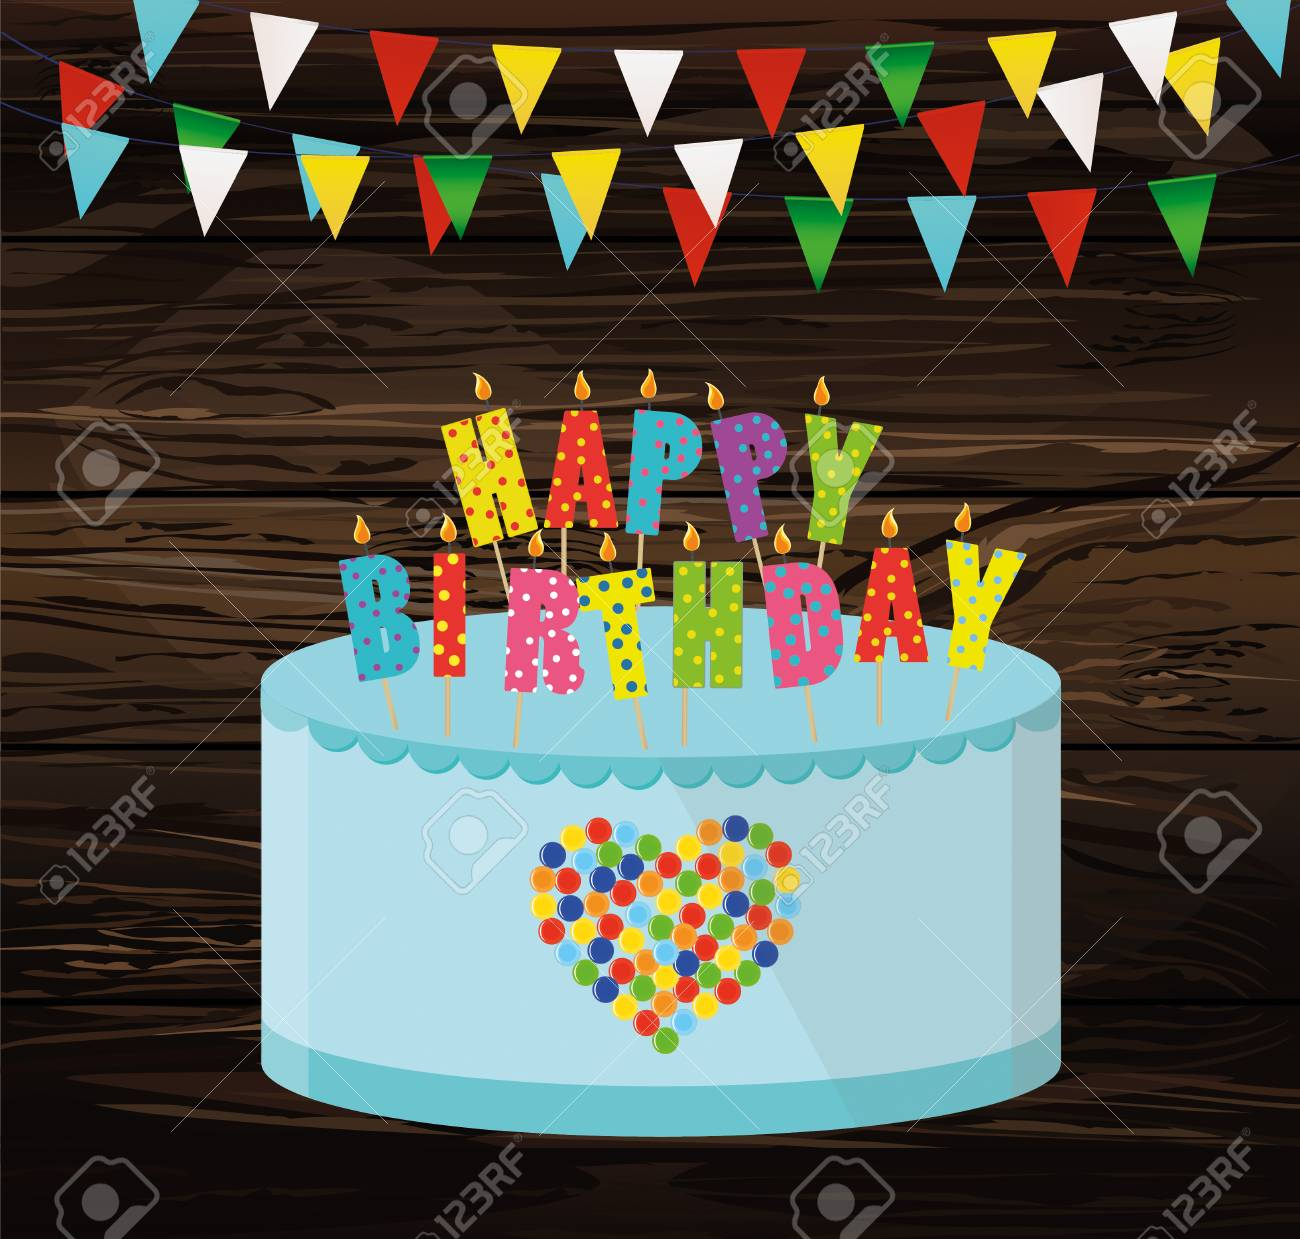 Festive Colorful Rgarland Of Flags And A Big Cake With Candles Happy Birthday Greeting